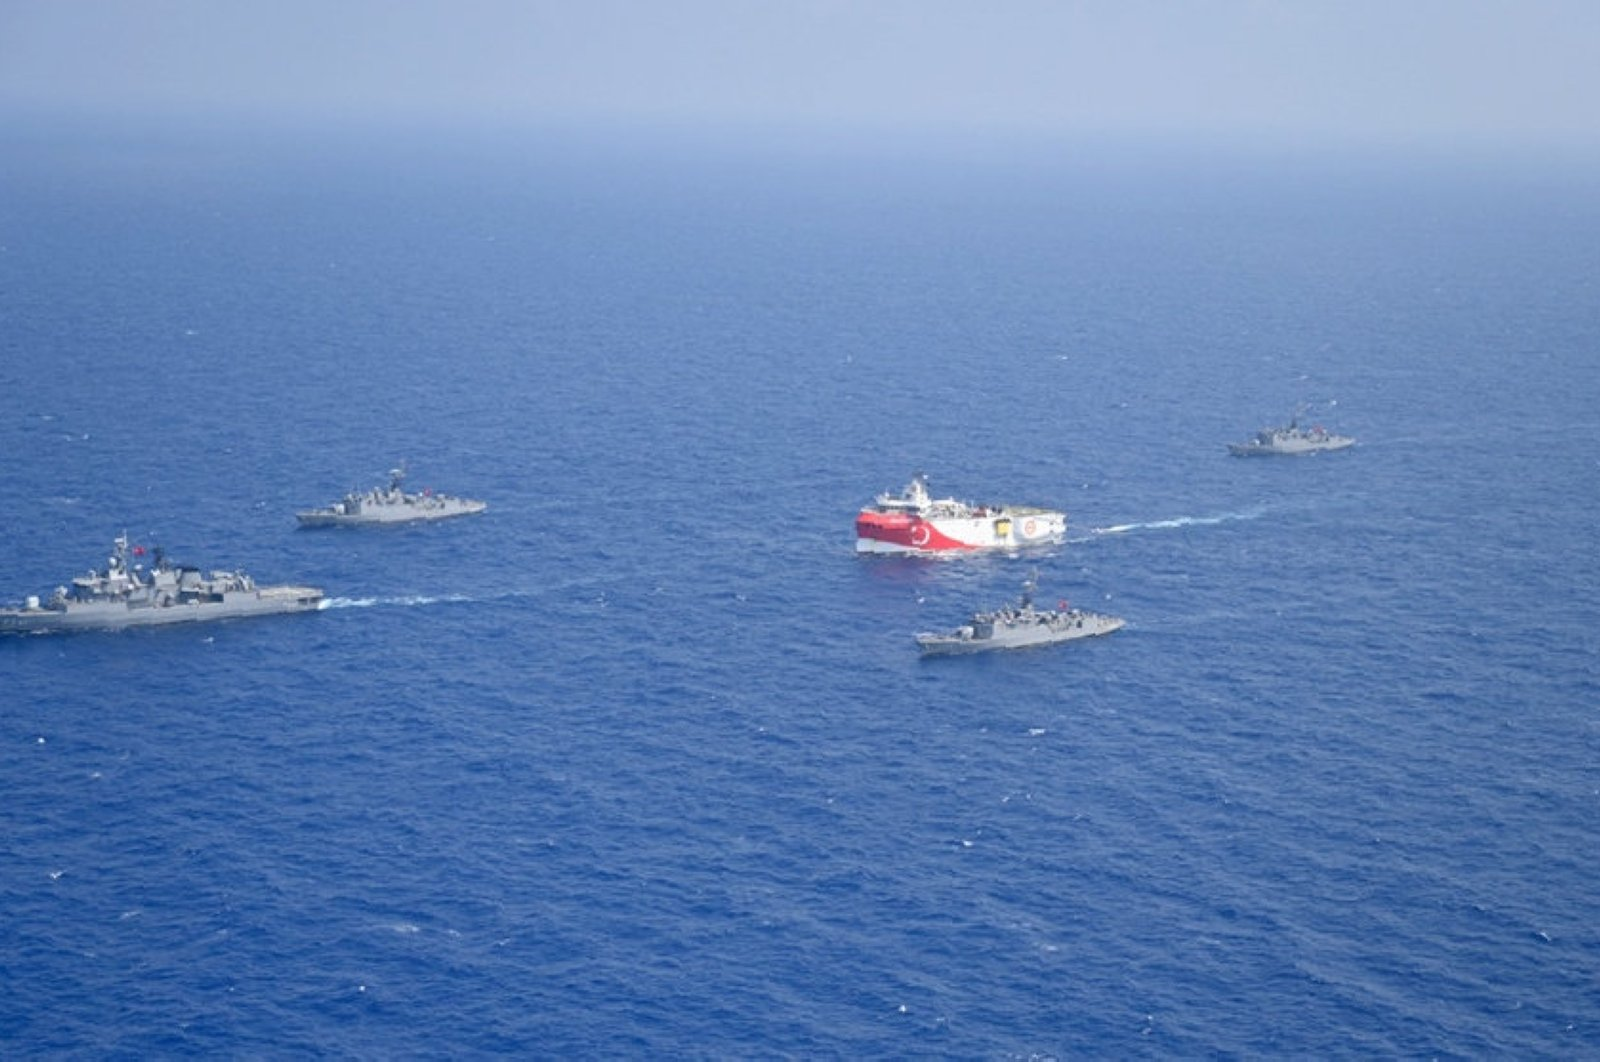 Turkey's research vessel Oruç Reis, in red and white, is surrounded by Turkish navy vessels as it heads to the west of southern Antalya province, Turkey, in the Mediterranean, Aug 10, 2020. (AP Photo)